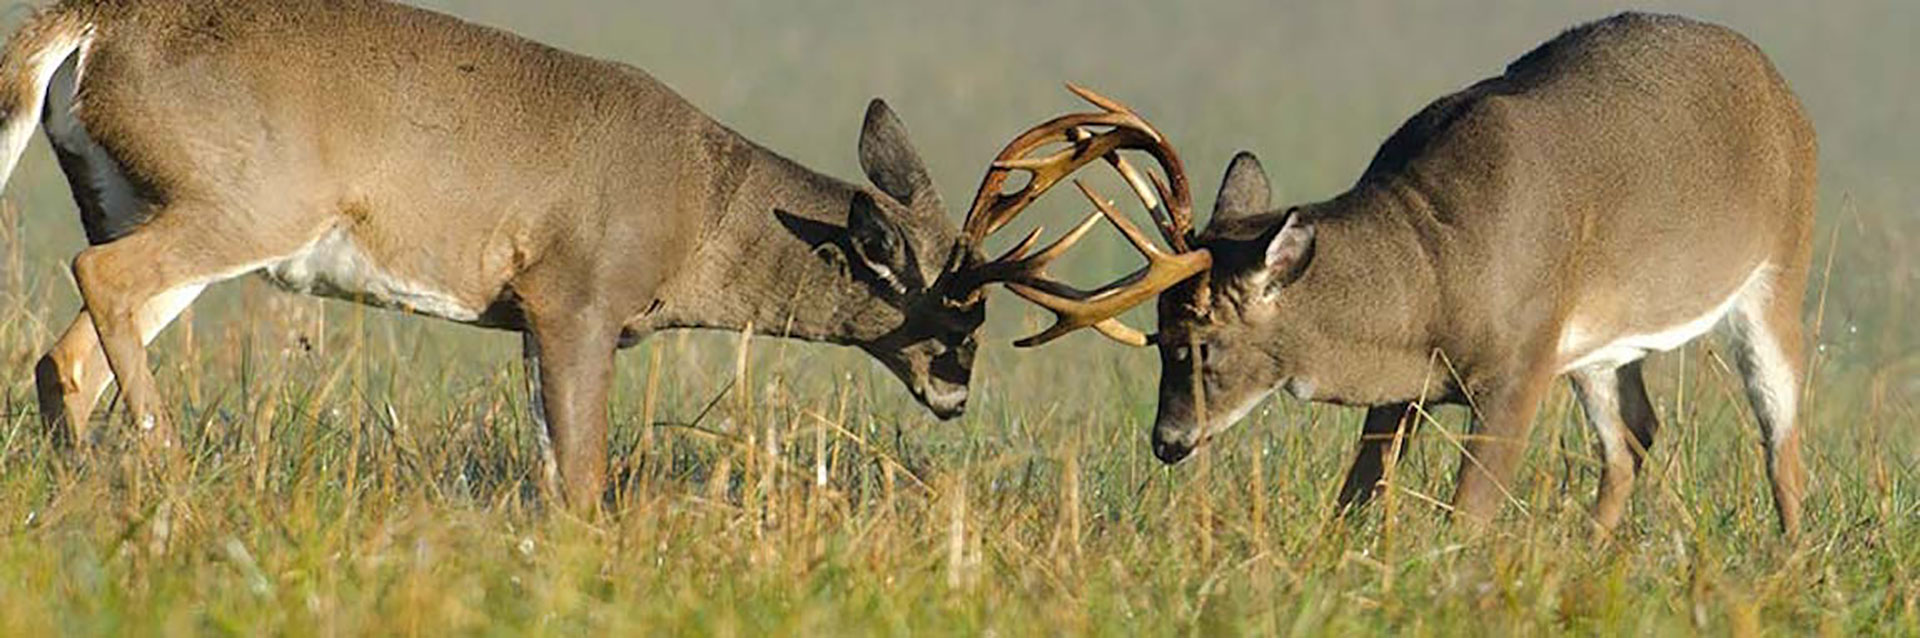 Kansas Whitetail Deer Hunting Outfitters